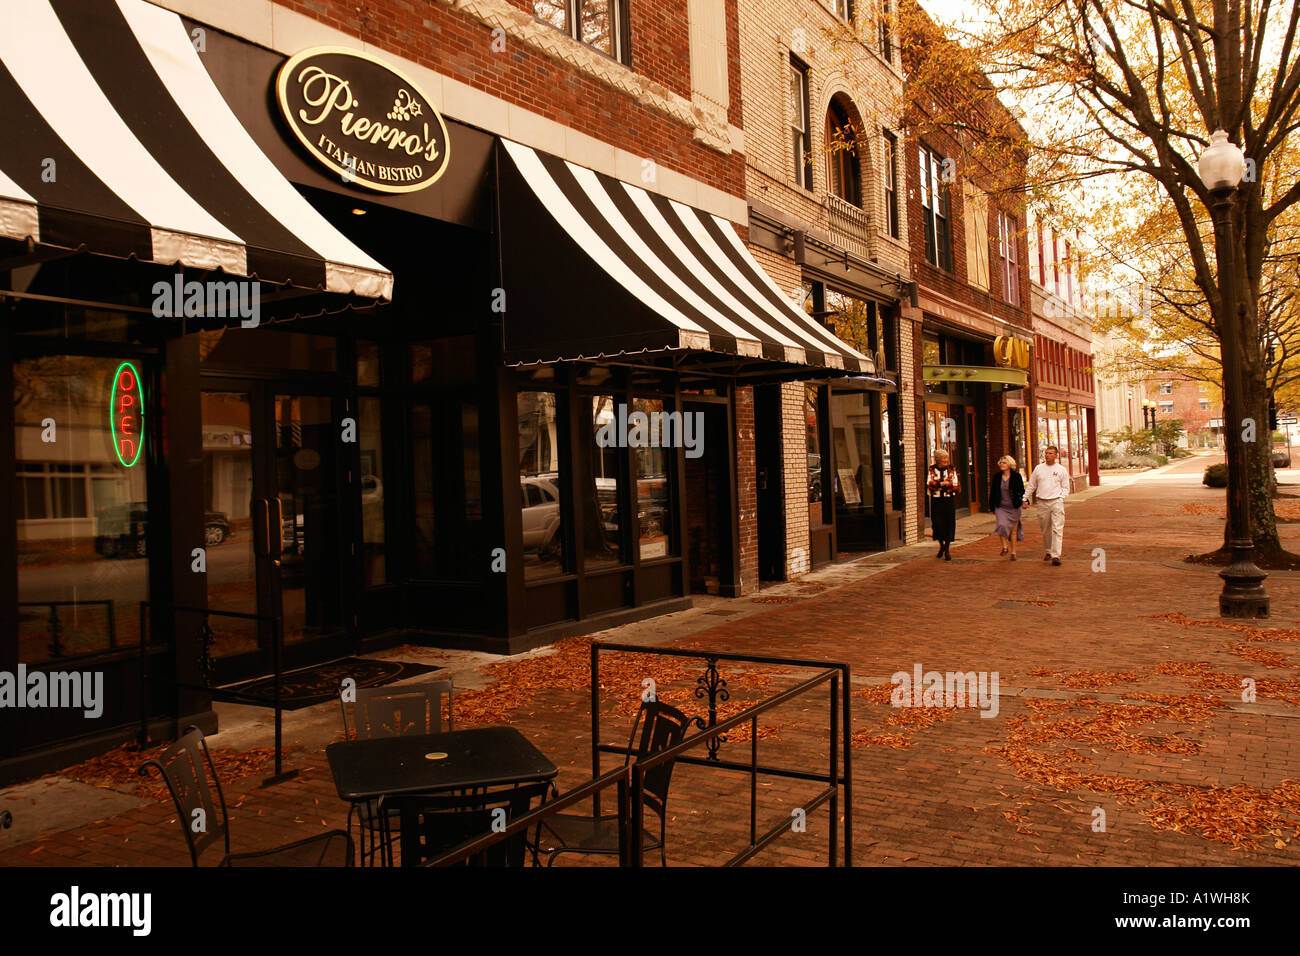 Fayetteville Nc Stock Photos & Fayetteville Nc Stock Images - Page 2 ...